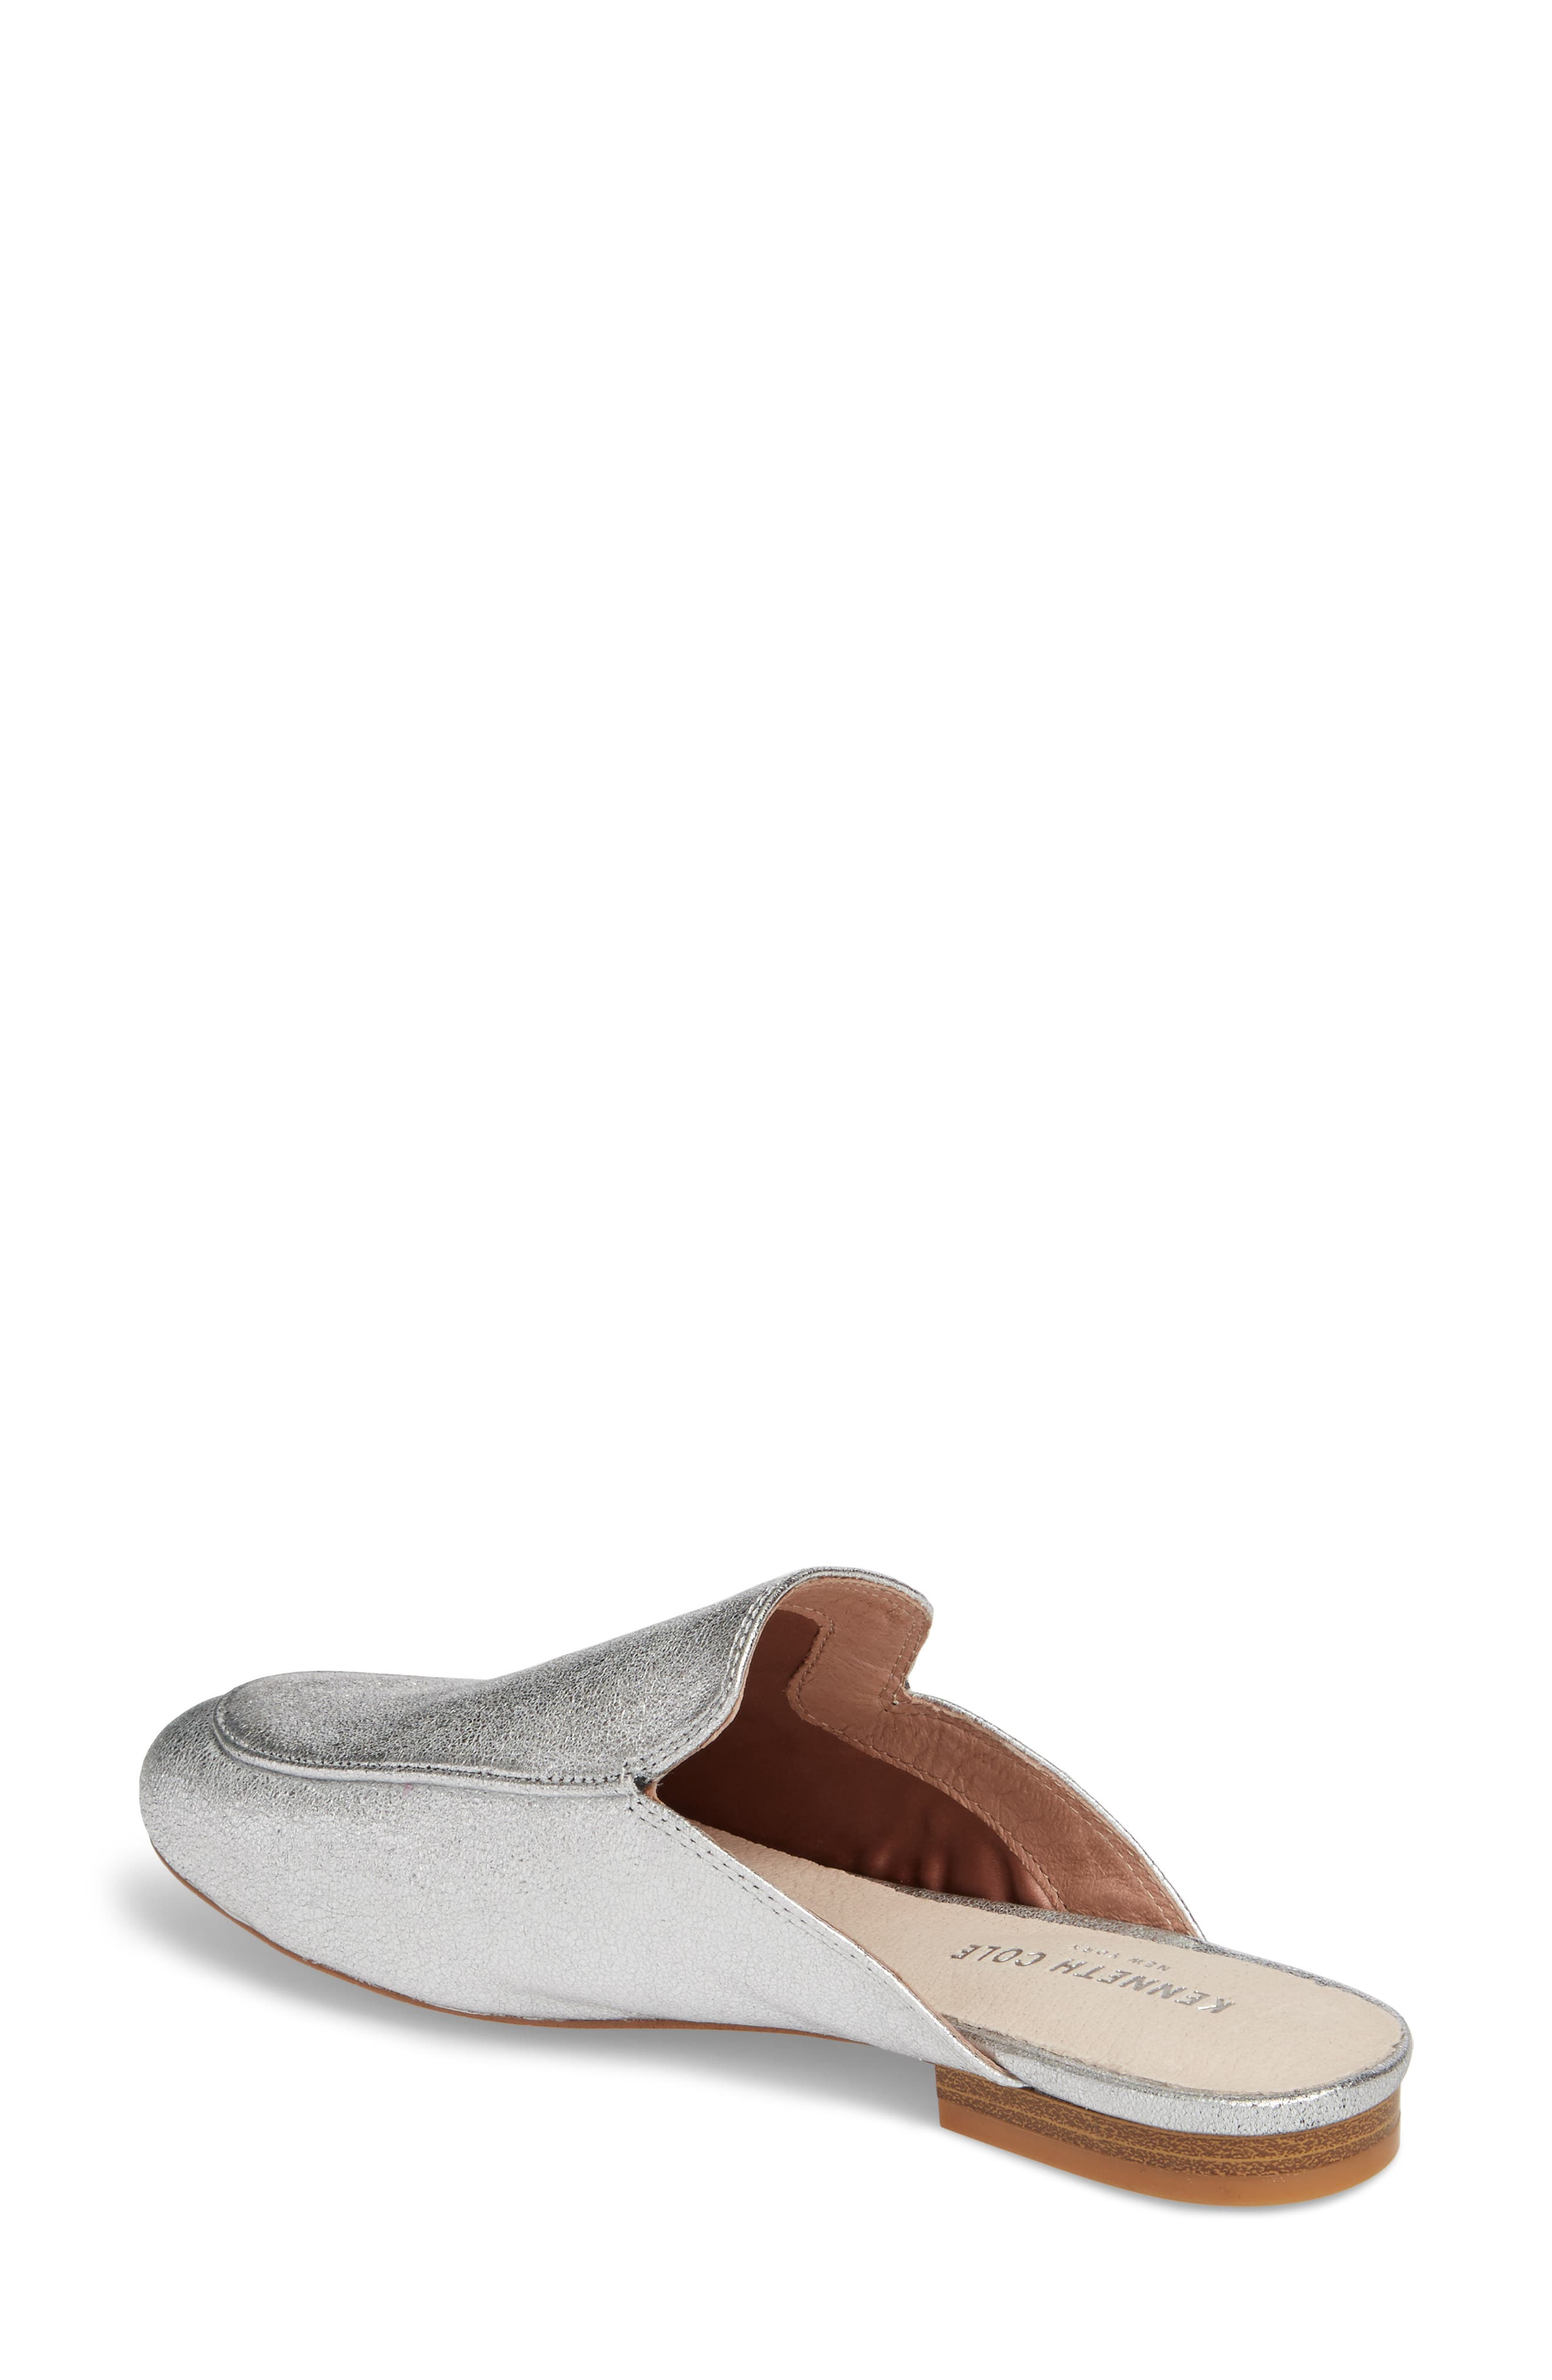 KENNETH COLE NEW YORK,                             Wallice Appliqué Mule,                             Alternate thumbnail 2, color,                             040